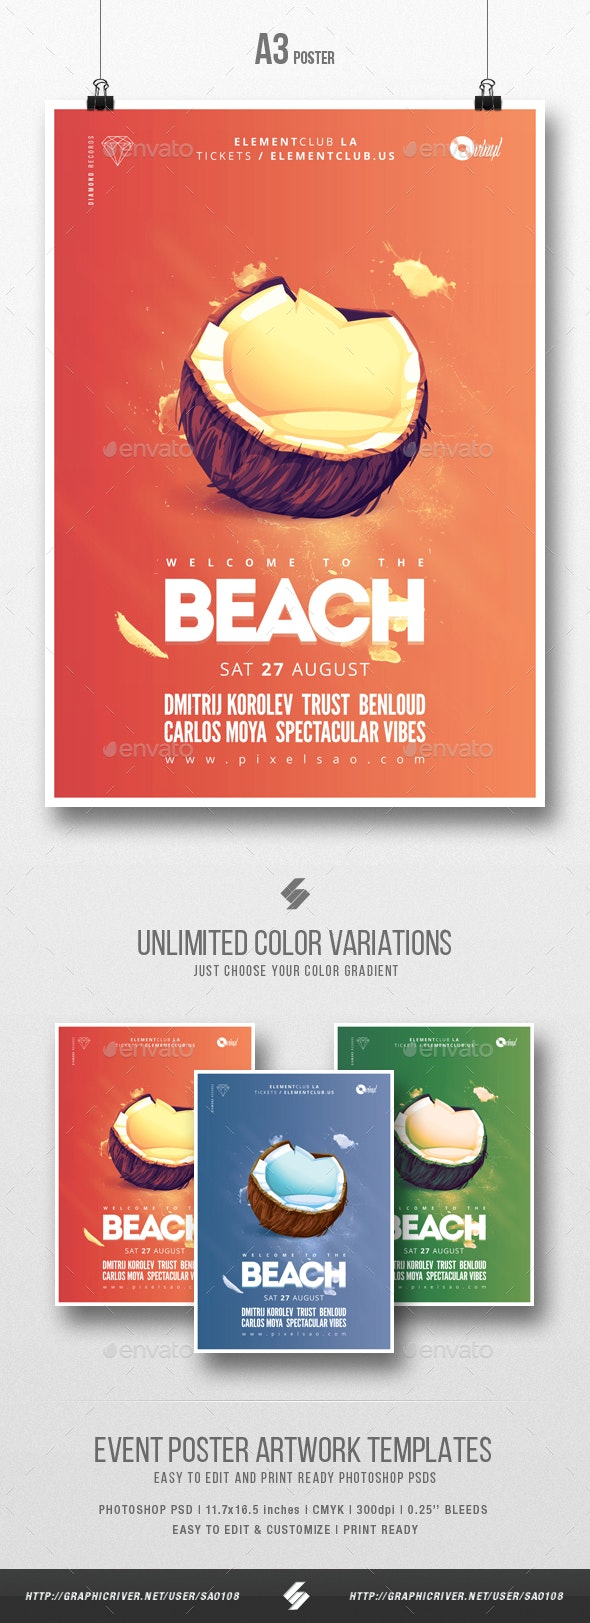 Beach Party - Minimal Flyer / Poster Template A3 - Clubs & Parties Events